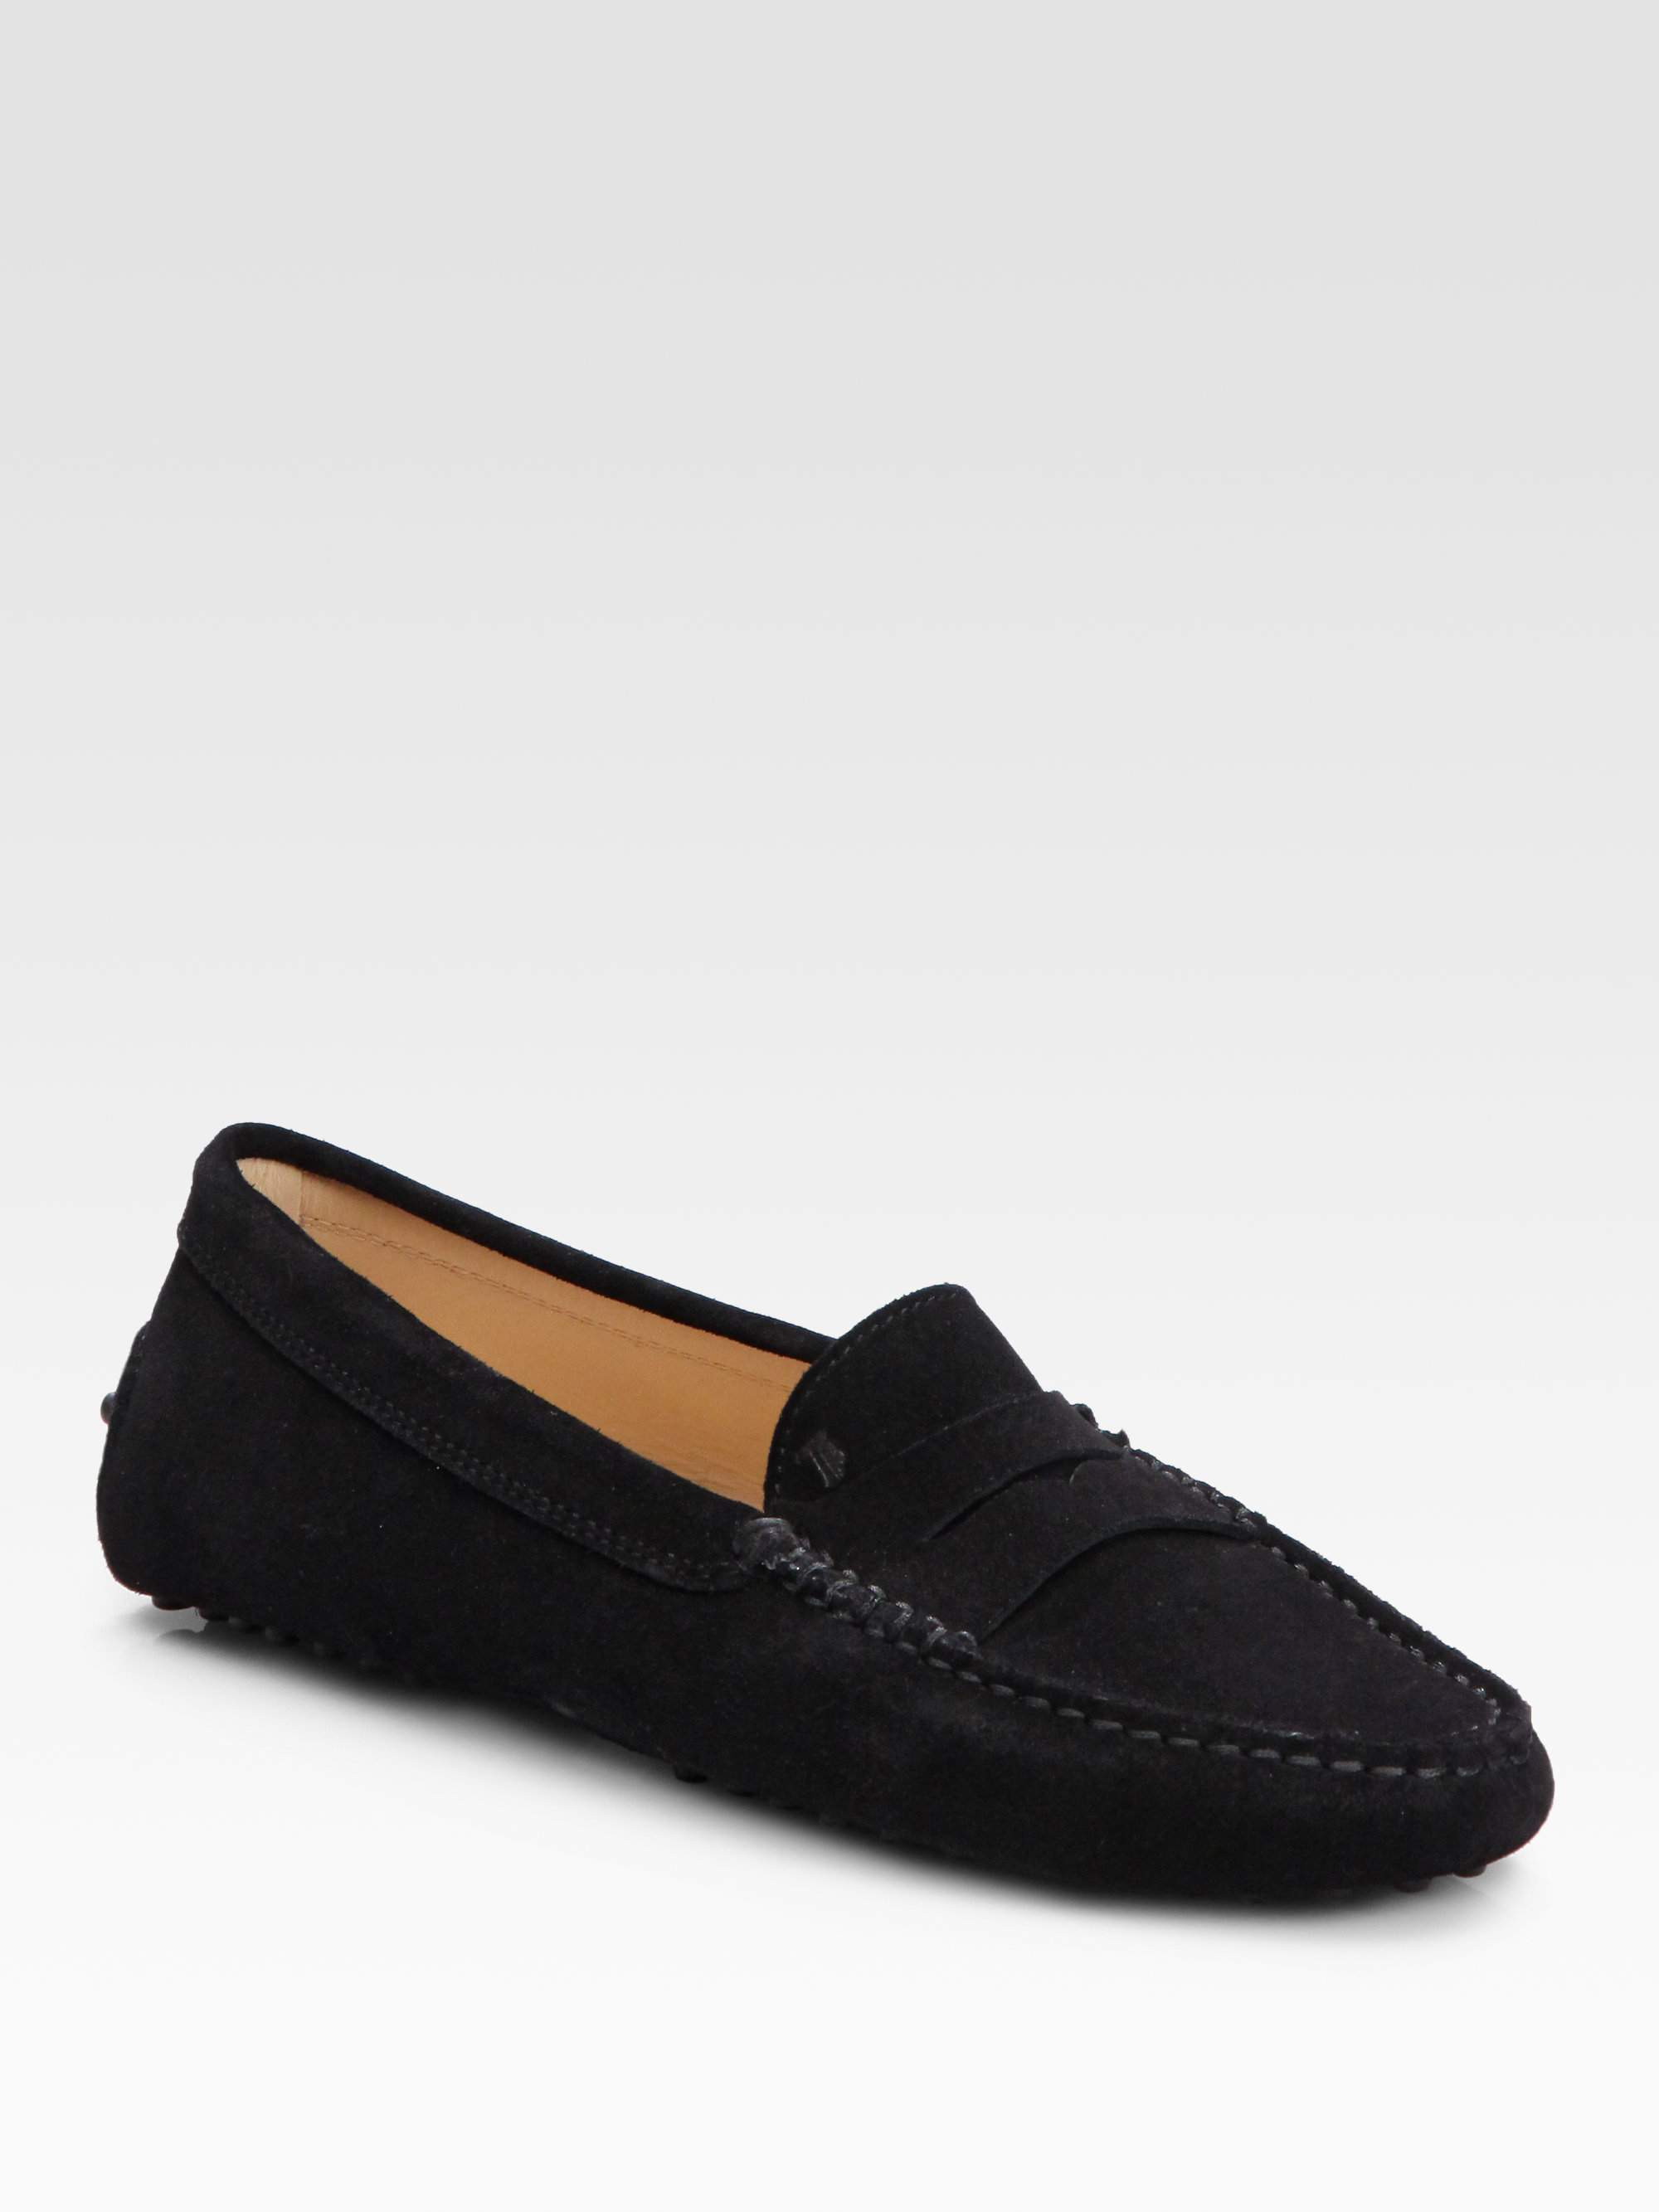 Lodi Black Suede Shoes